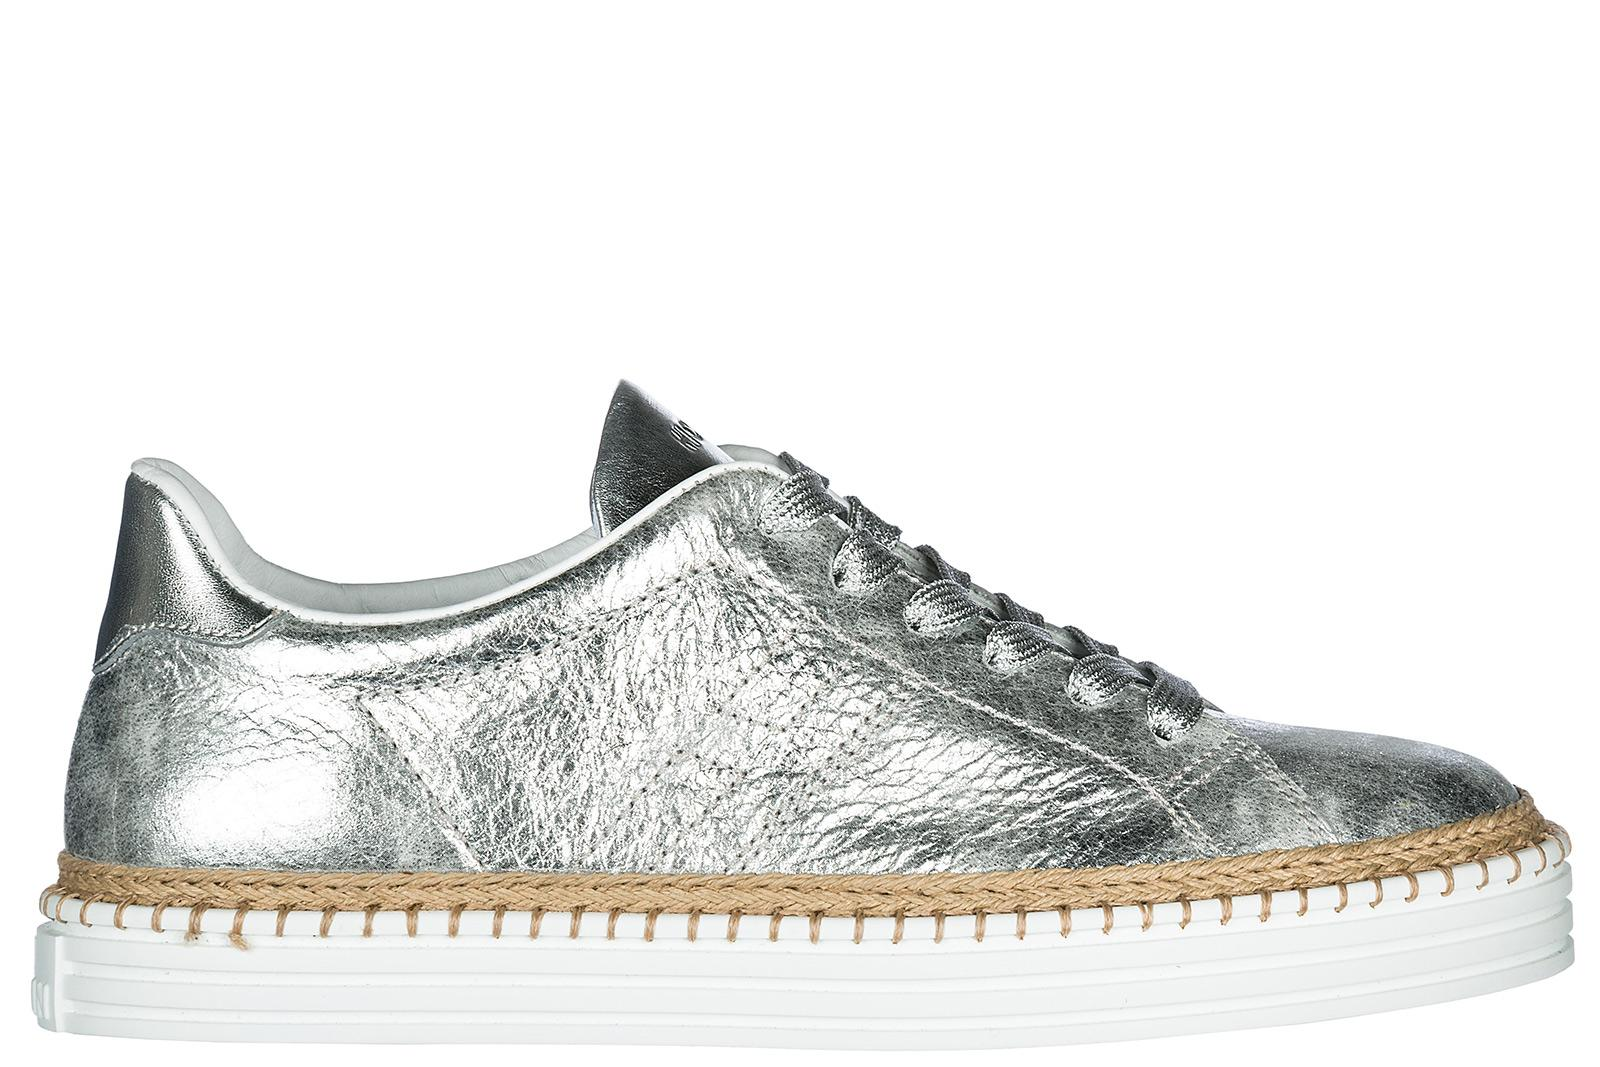 Hogan Women's Shoes Leather Trainers Sneakers R260 In Silver